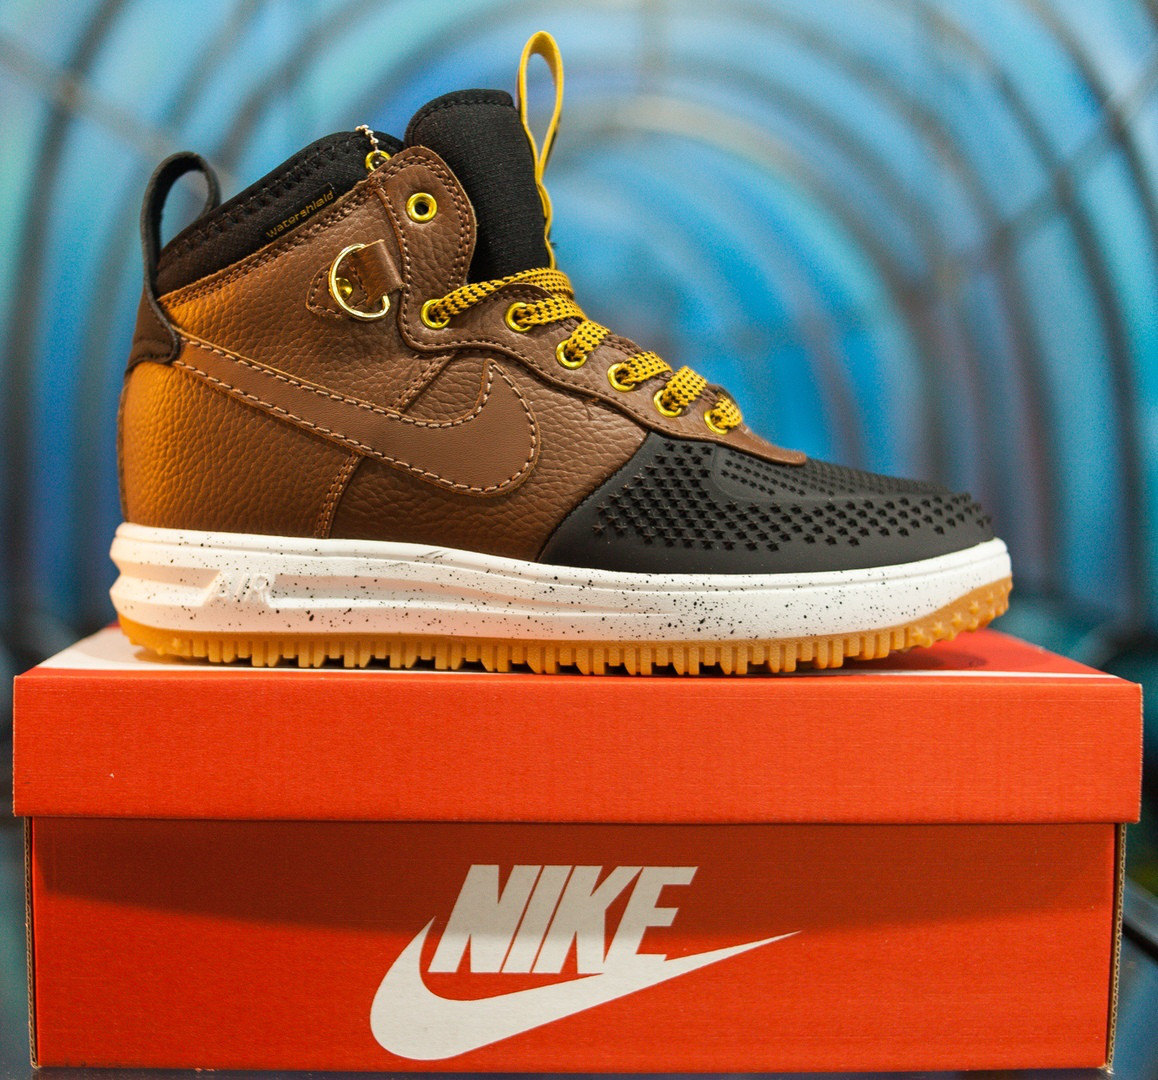 084b2898 Кроссовки Nike Lunar Force 1 Duckboot brown без меха (Реплика ААА+) -  Интернет